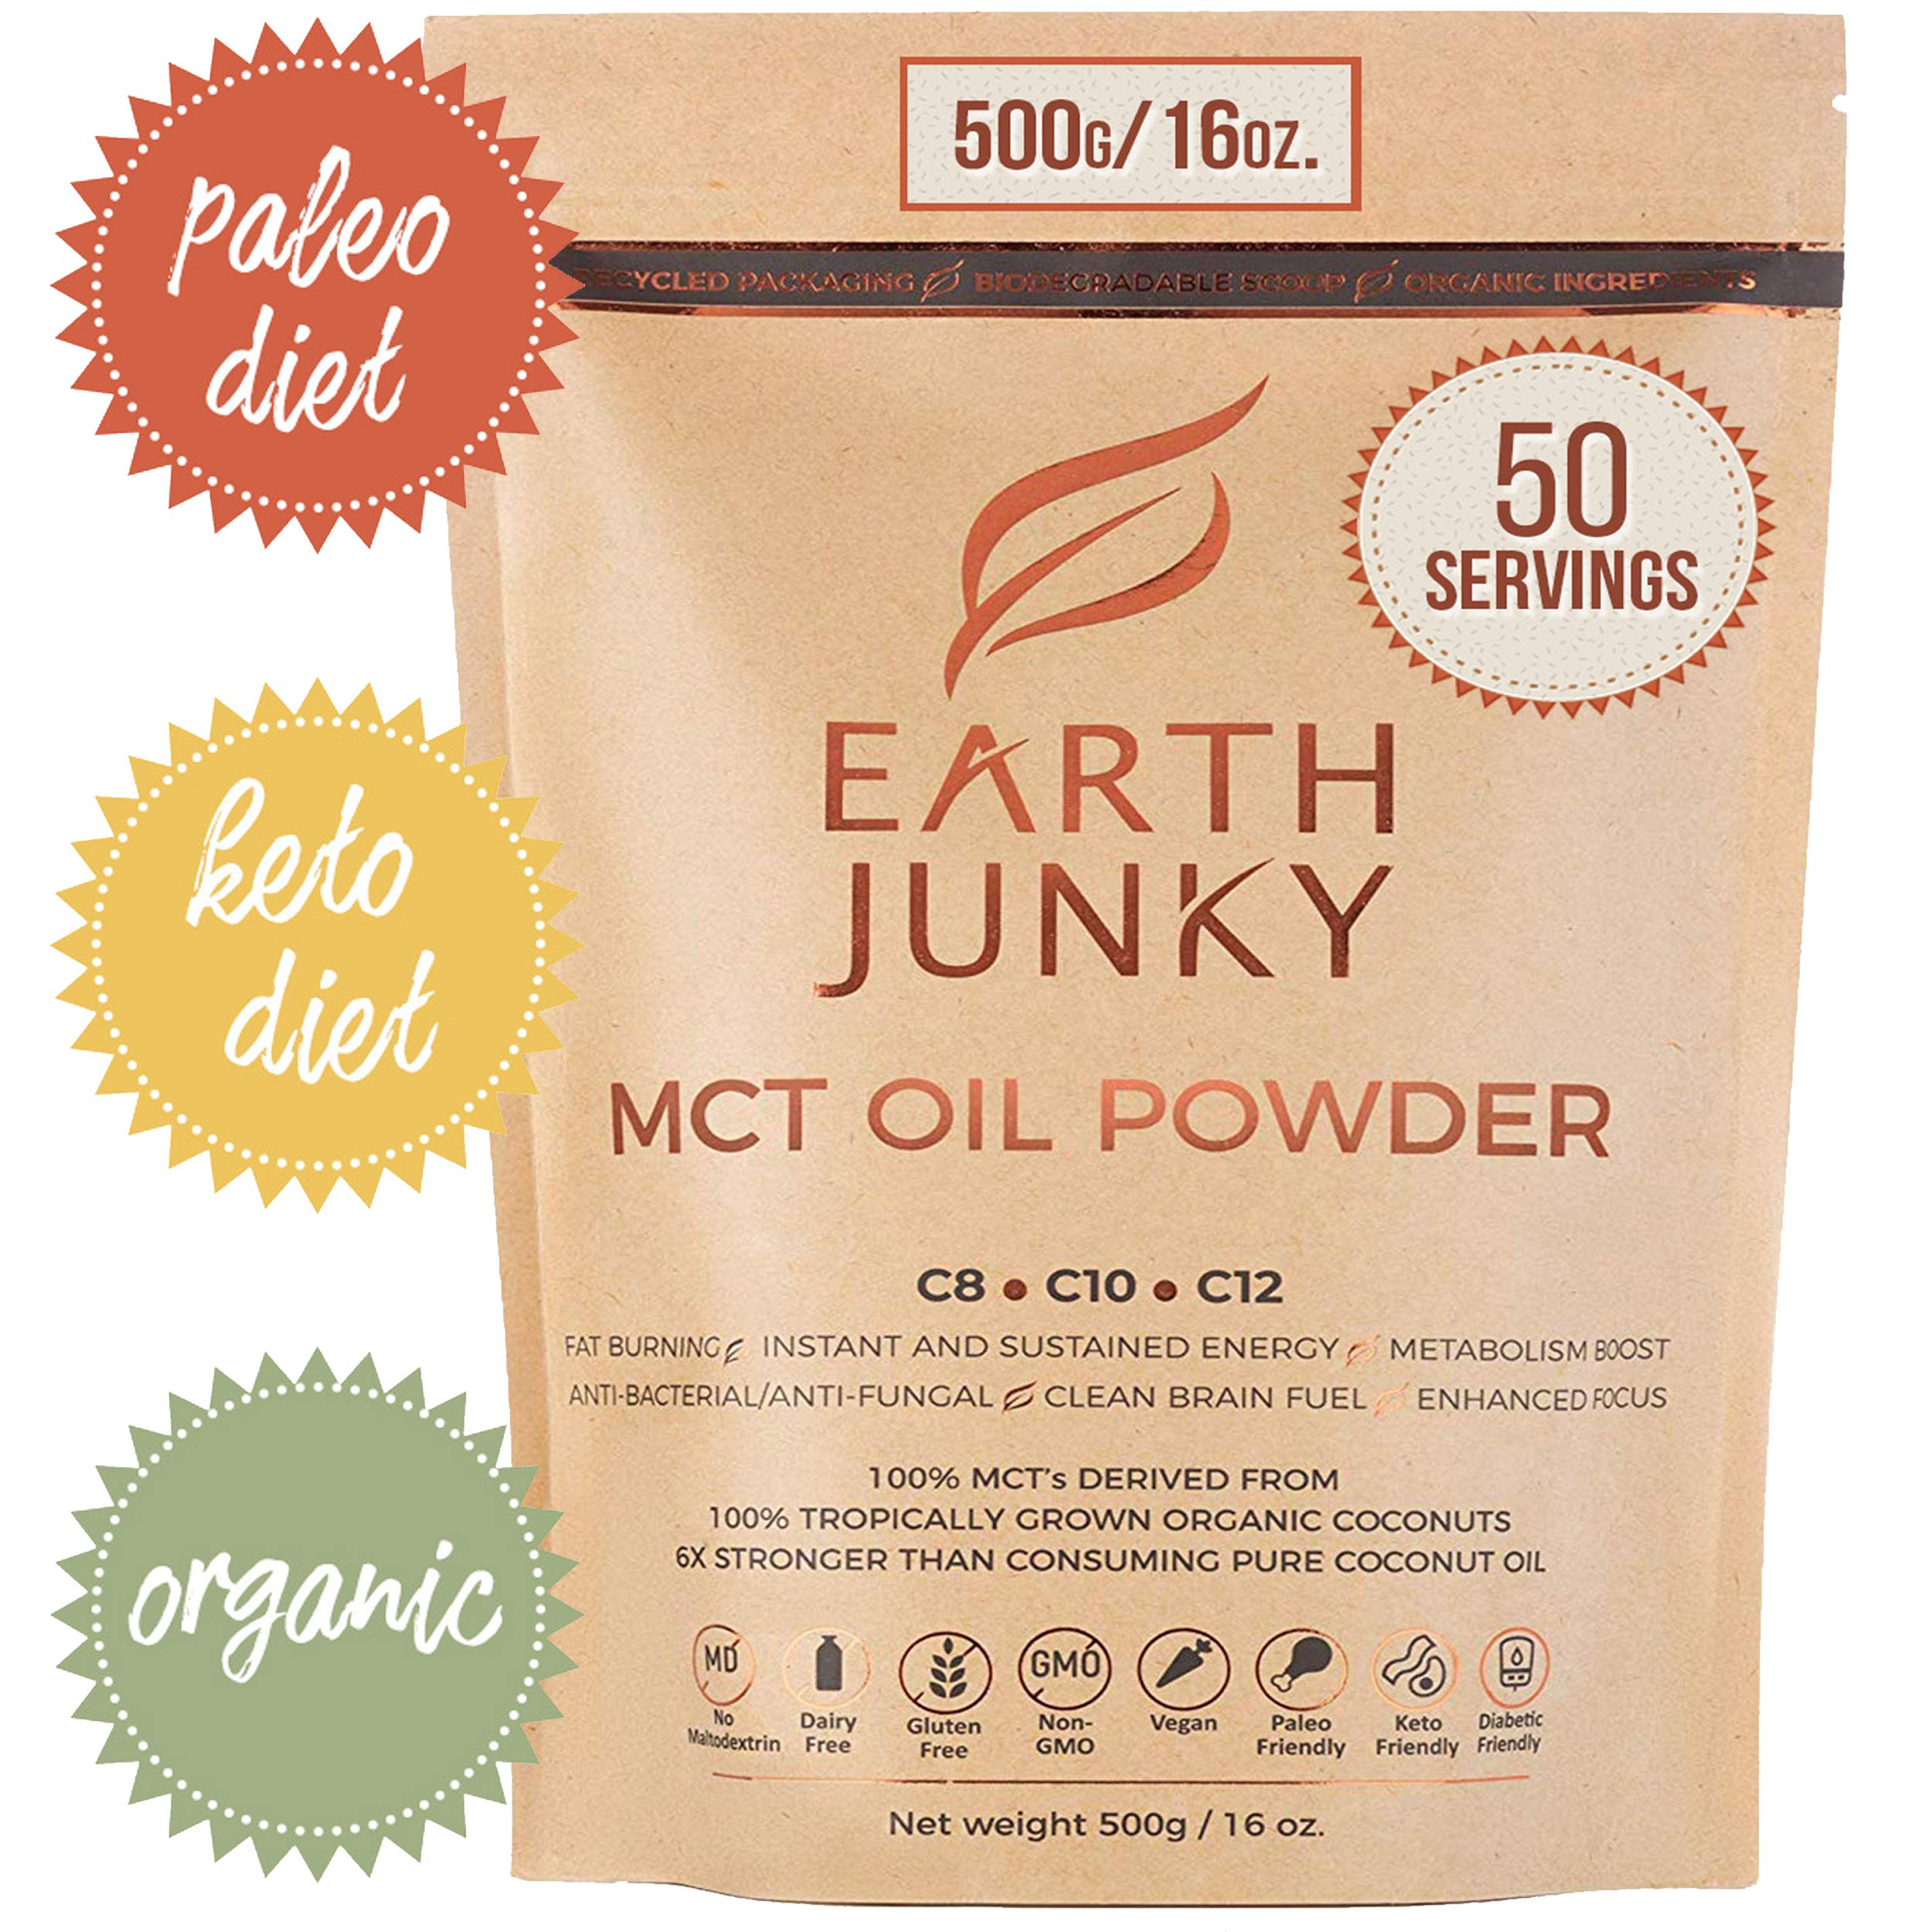 MCT Oil Powder - Keto Weight Loss for Keto Diet - 16oz. 50 Servings 100% Organic Brain Fuel and Instant Energy Boost - MCT Oil Powder for Coffee - Improved Digestion, C8, C10 and C12